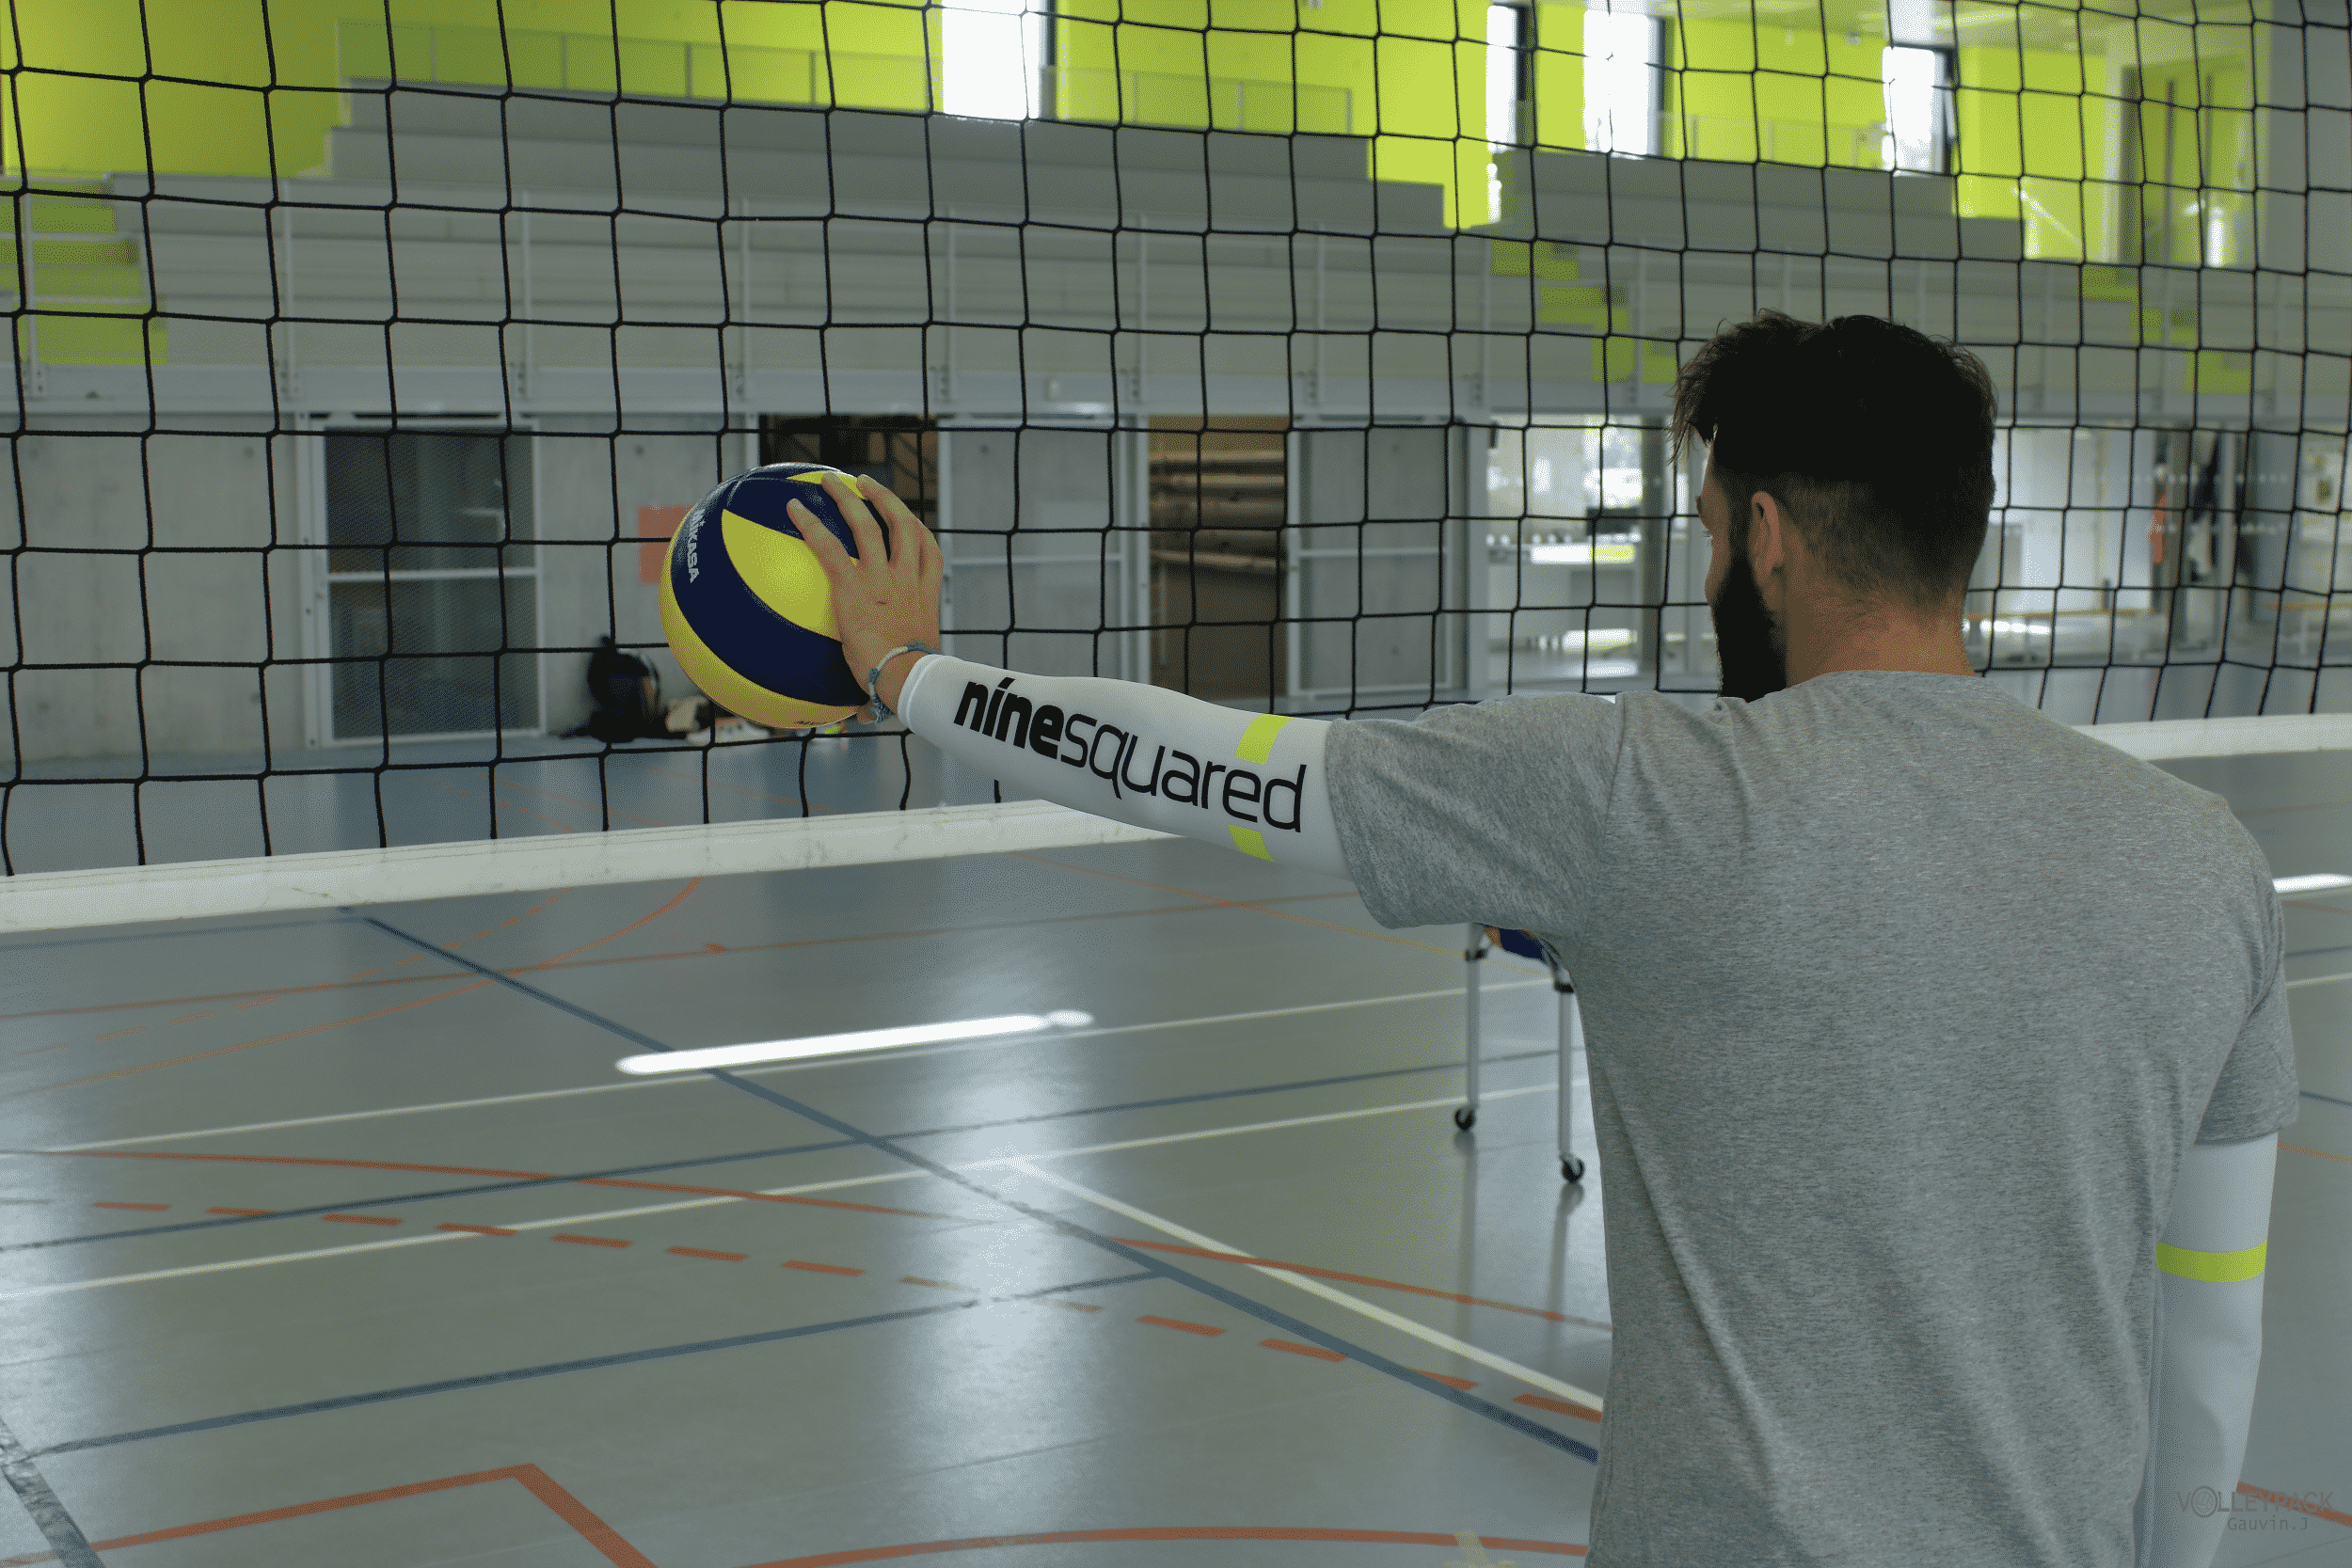 test-volleypack-manchons-volley-ninesquared-arm-sleeves-2019-8